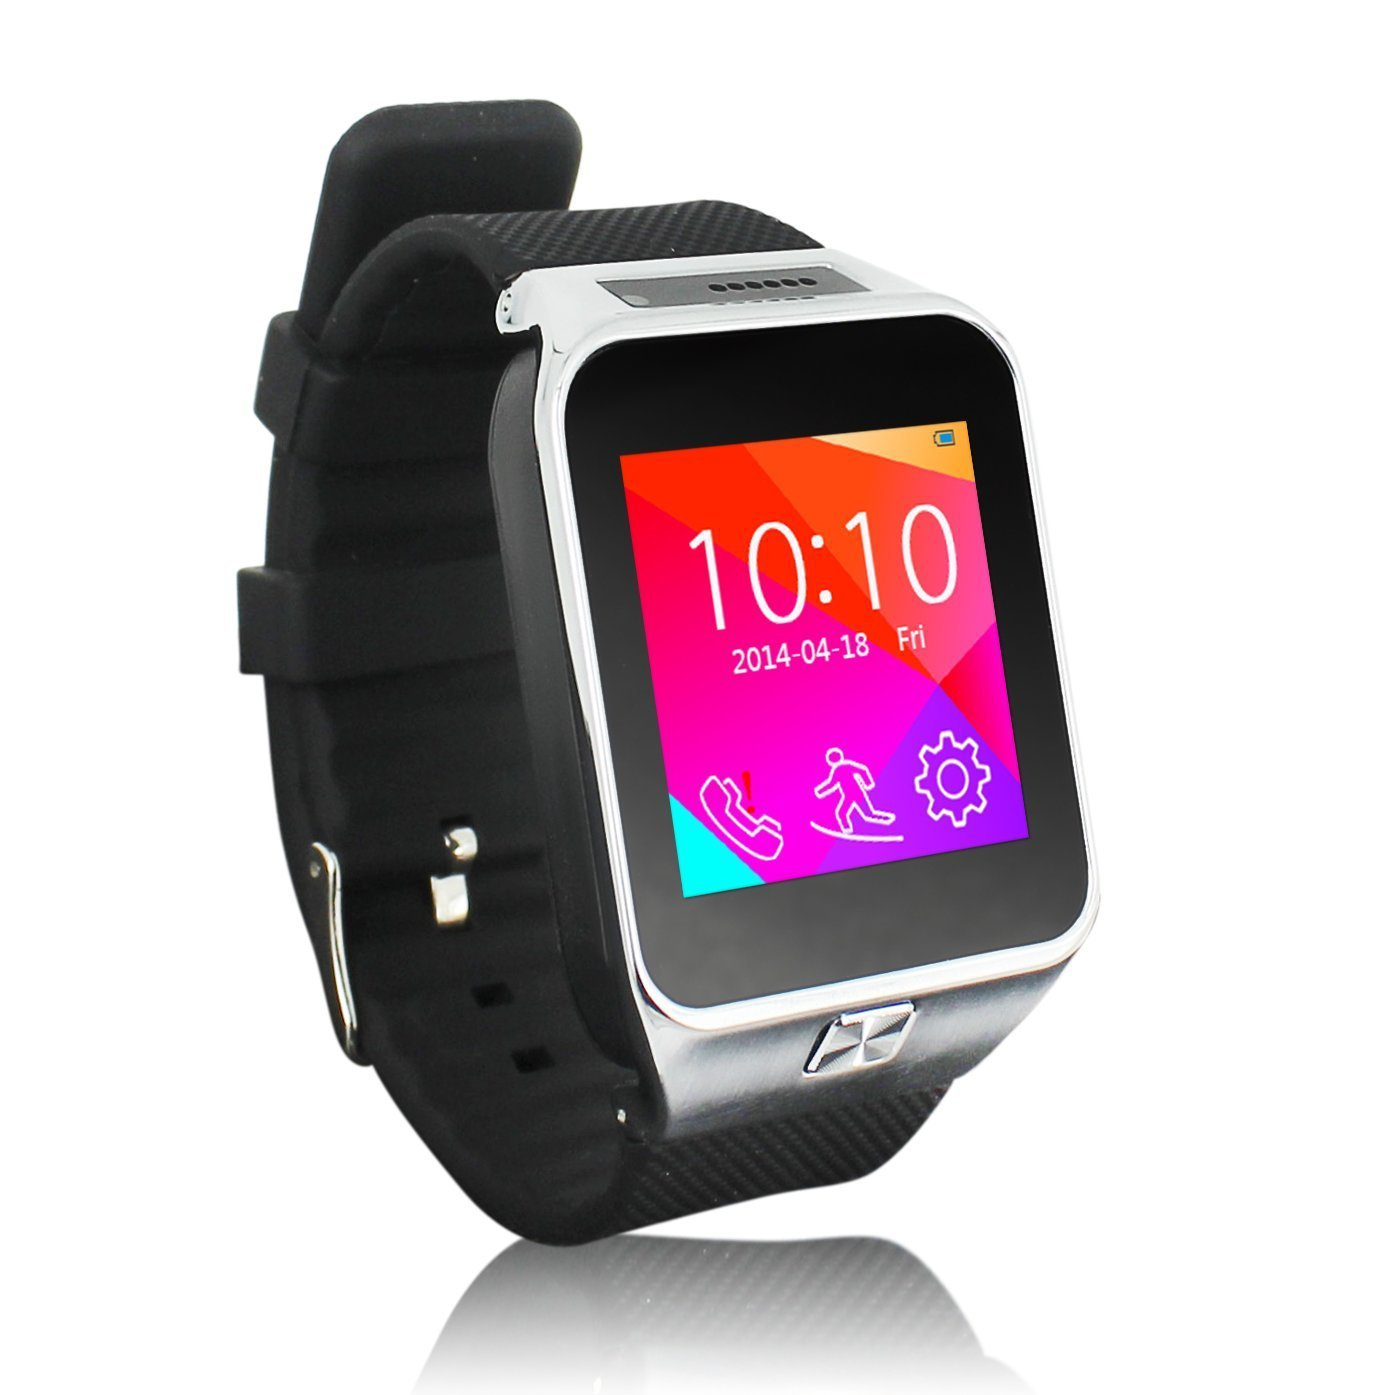 watches watch bluetooth smart ebay waterproof for iphone nfc phone itm mate mobile silver android